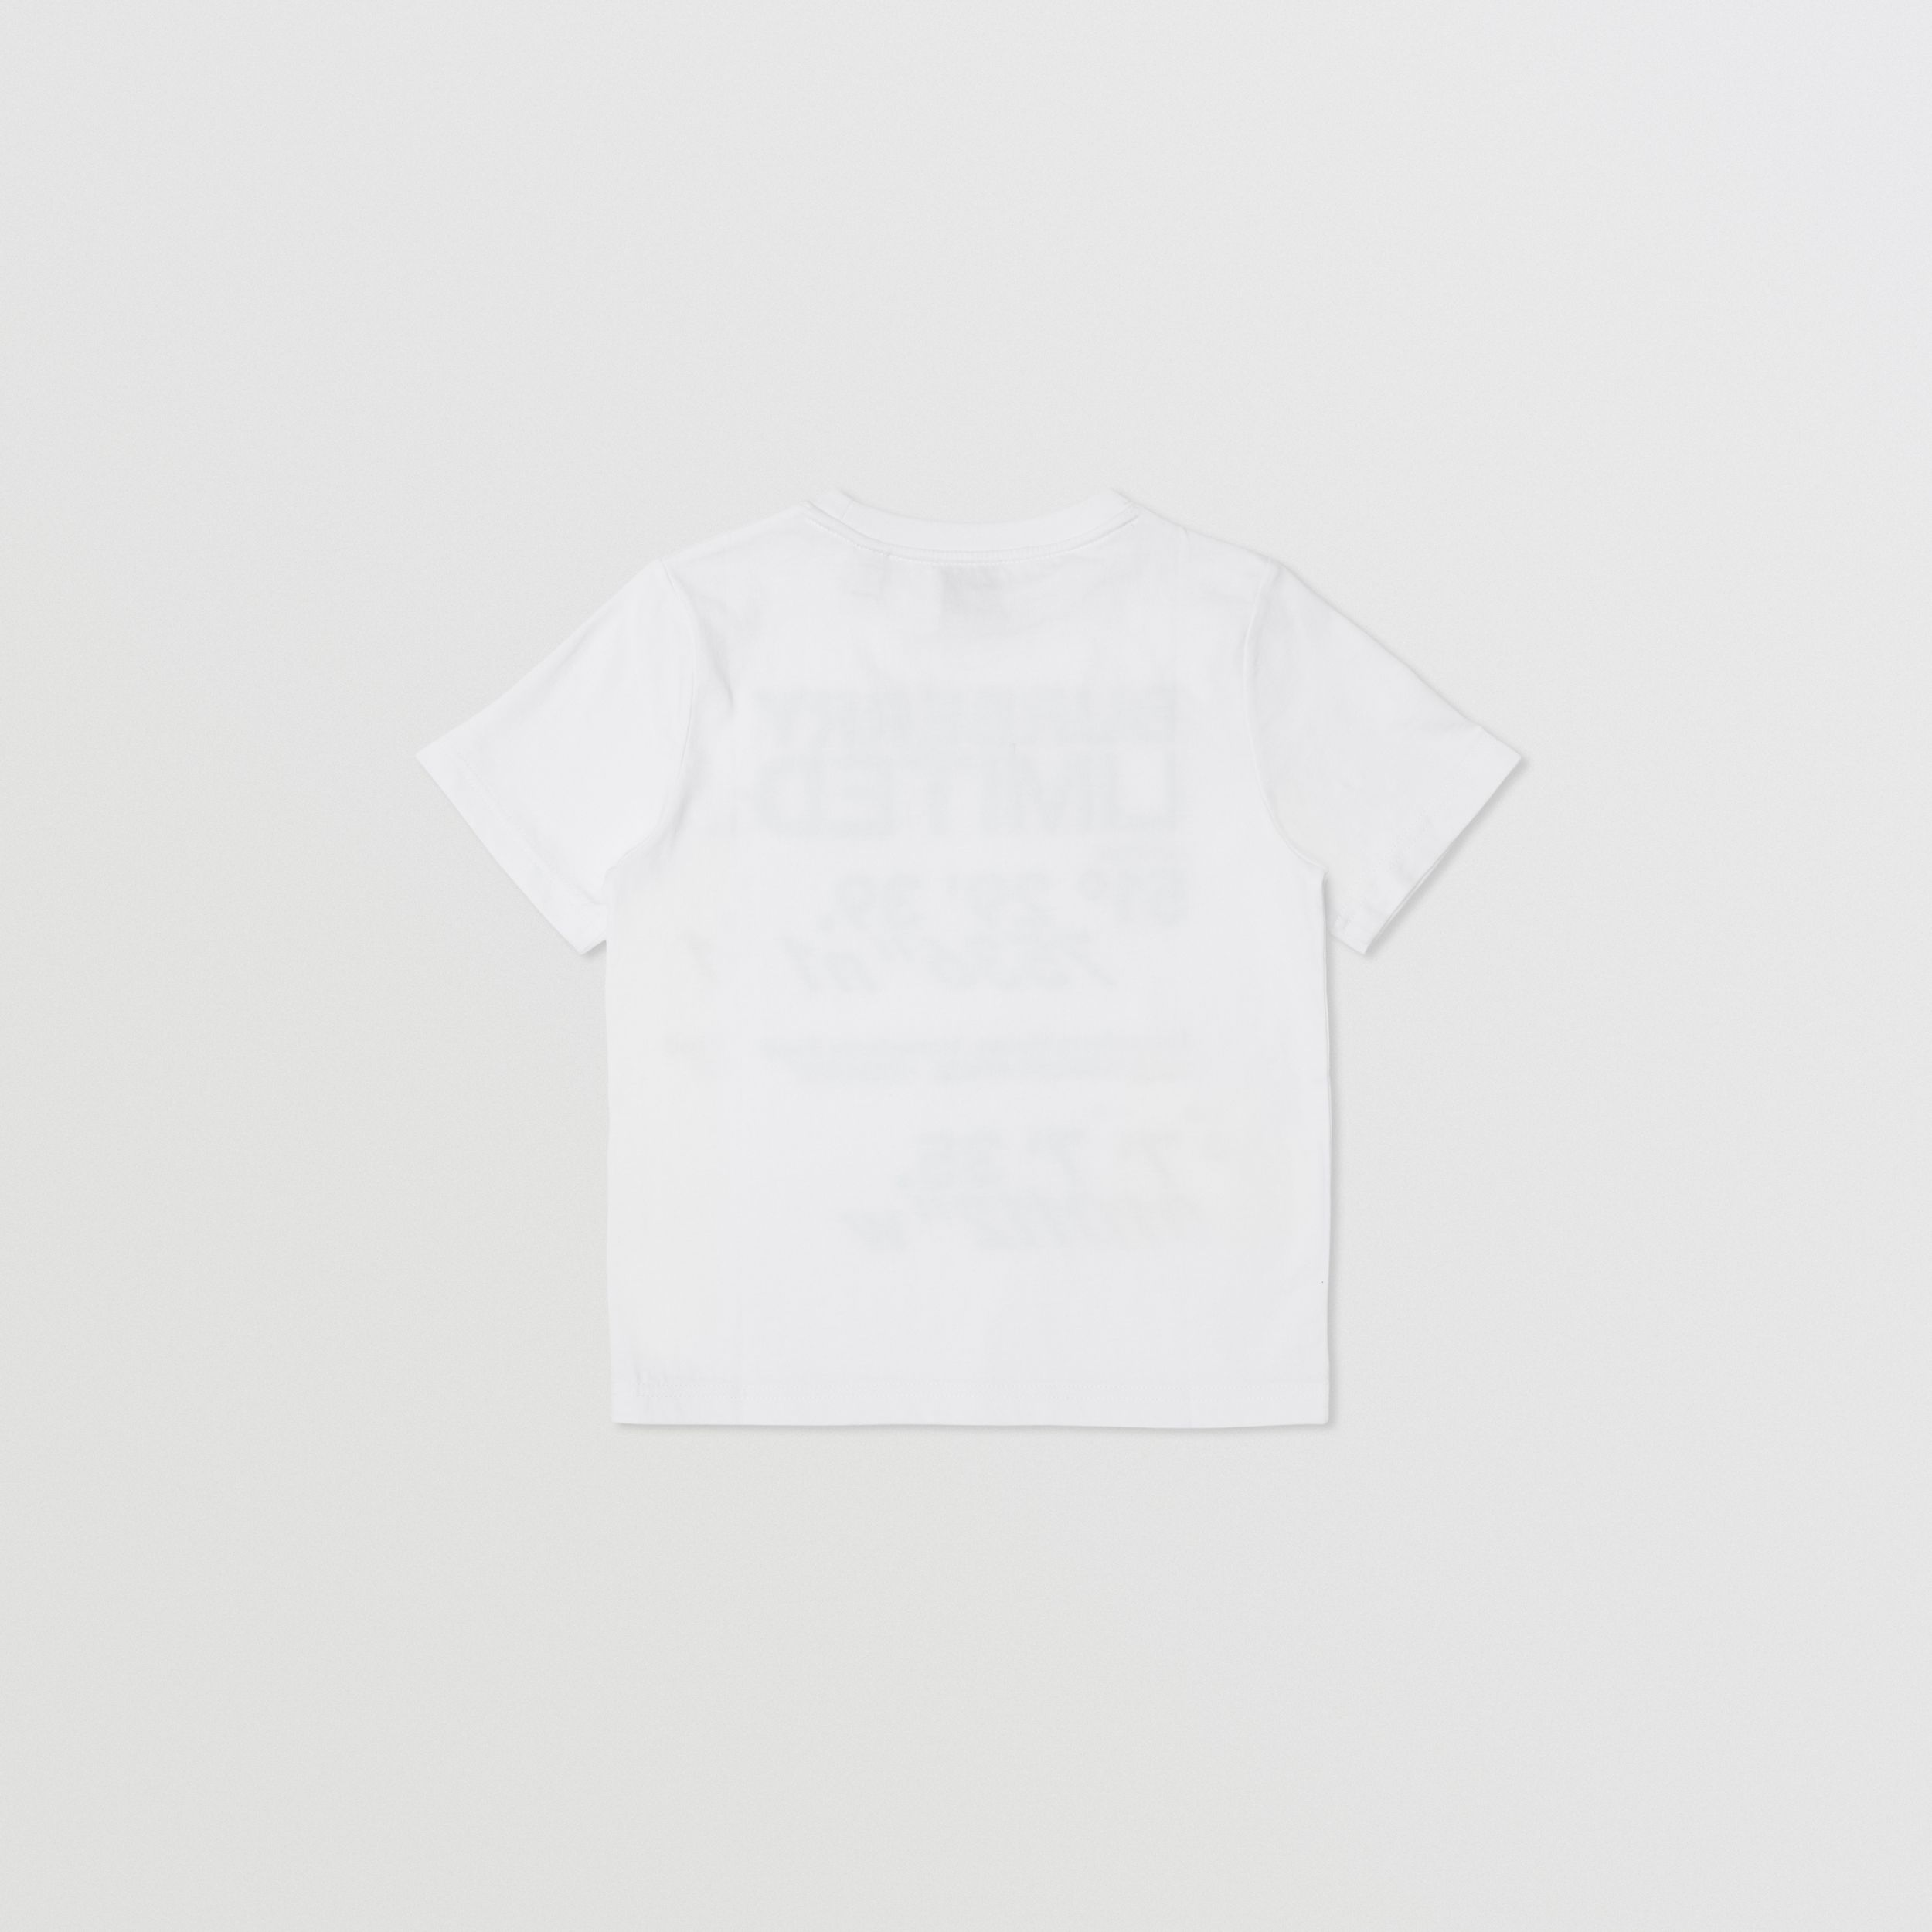 Coordinates Print Cotton T-shirt in White | Burberry - 3